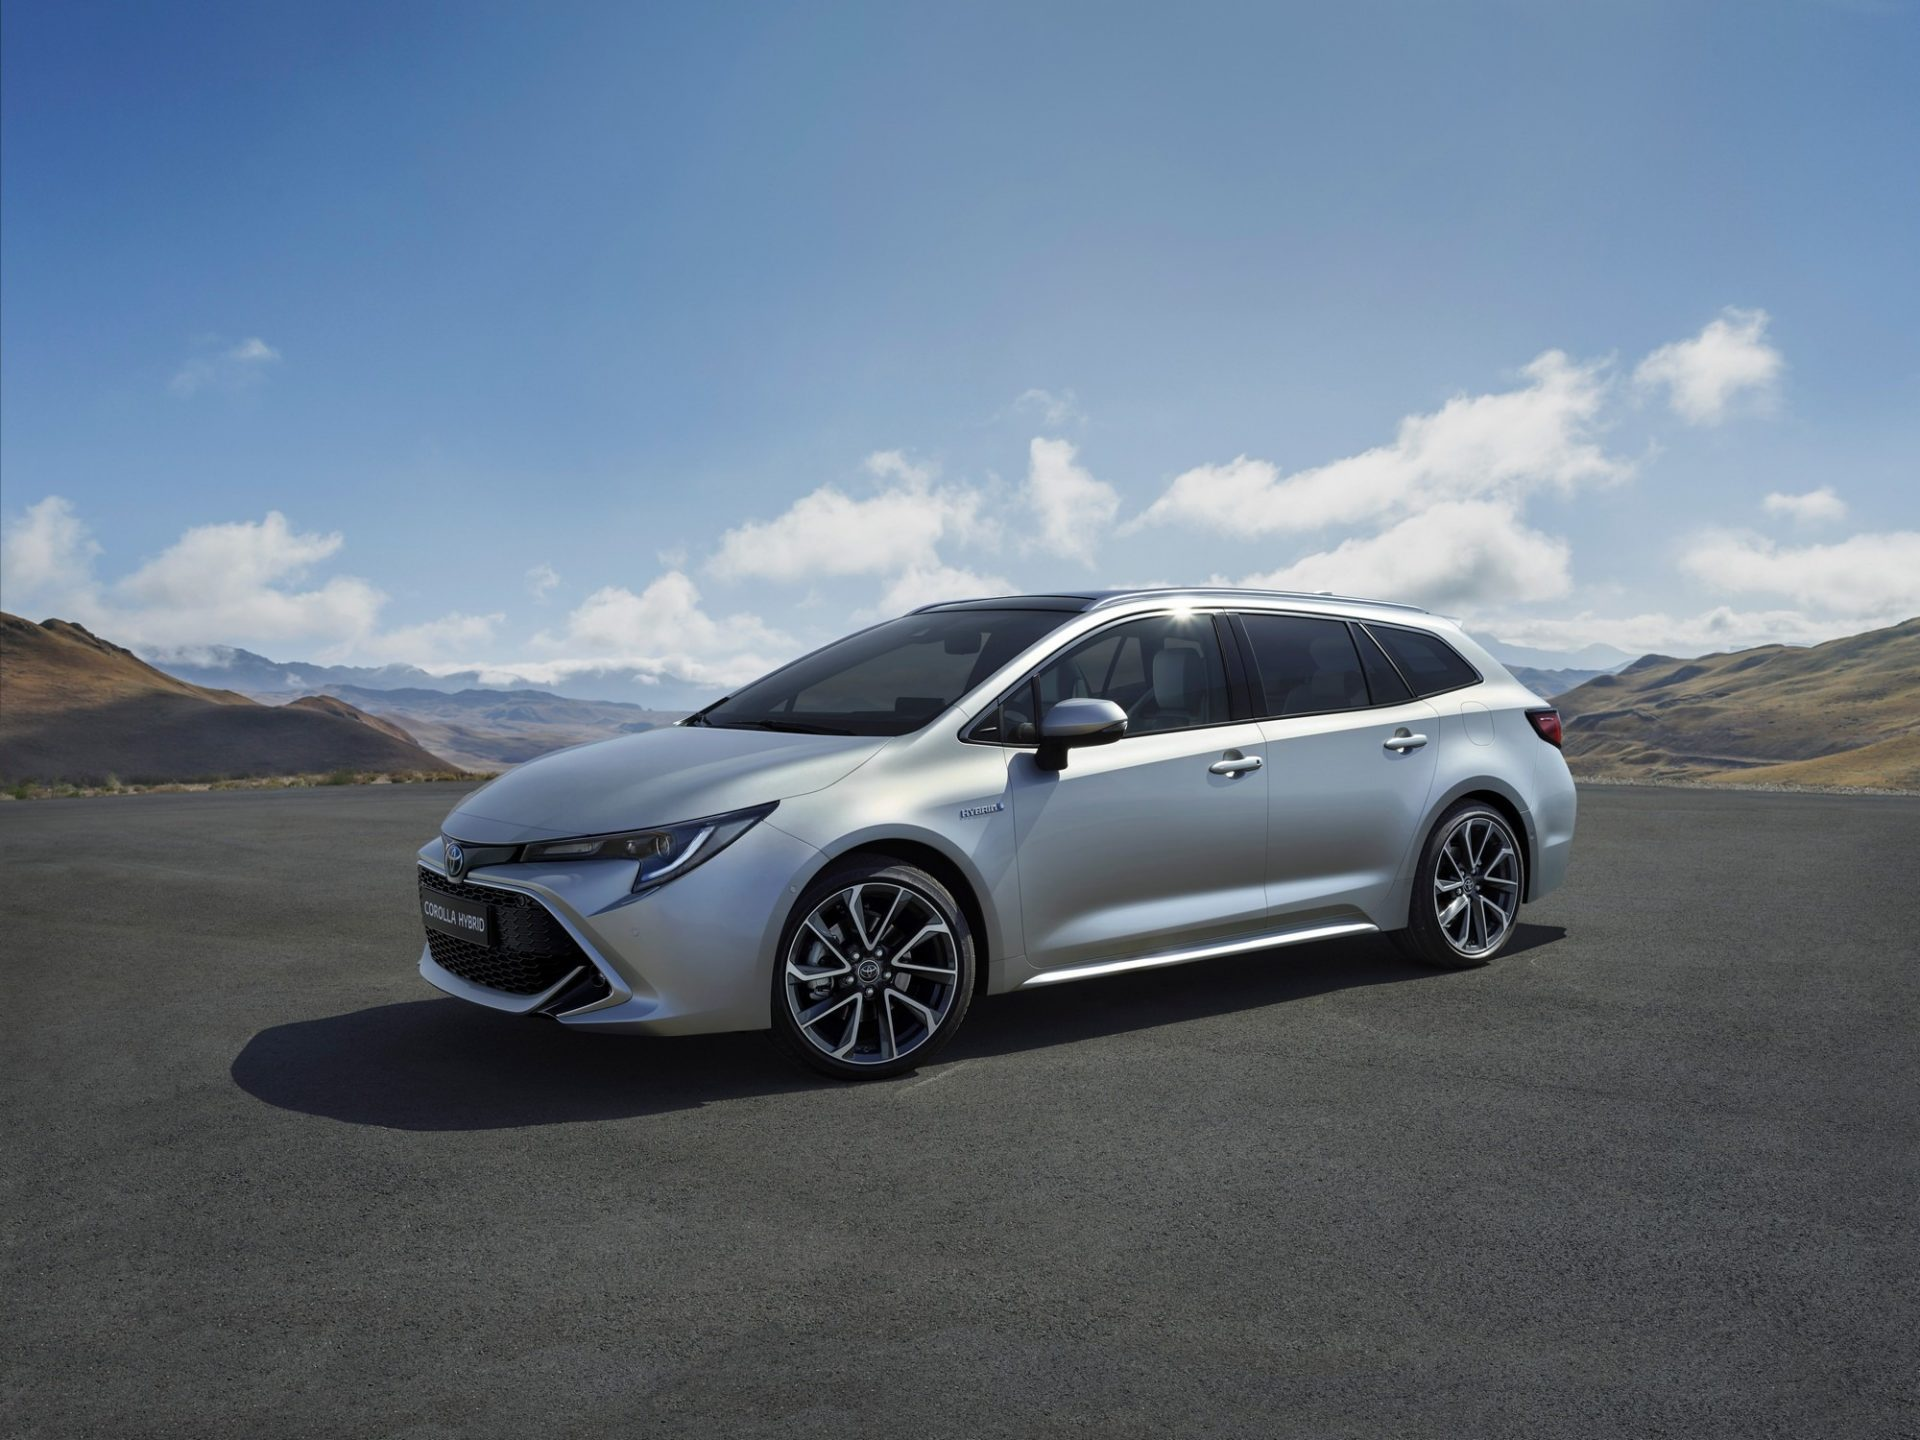 New Toyota Corolla Debuts With Two Flavors at Paris Motor Show 1